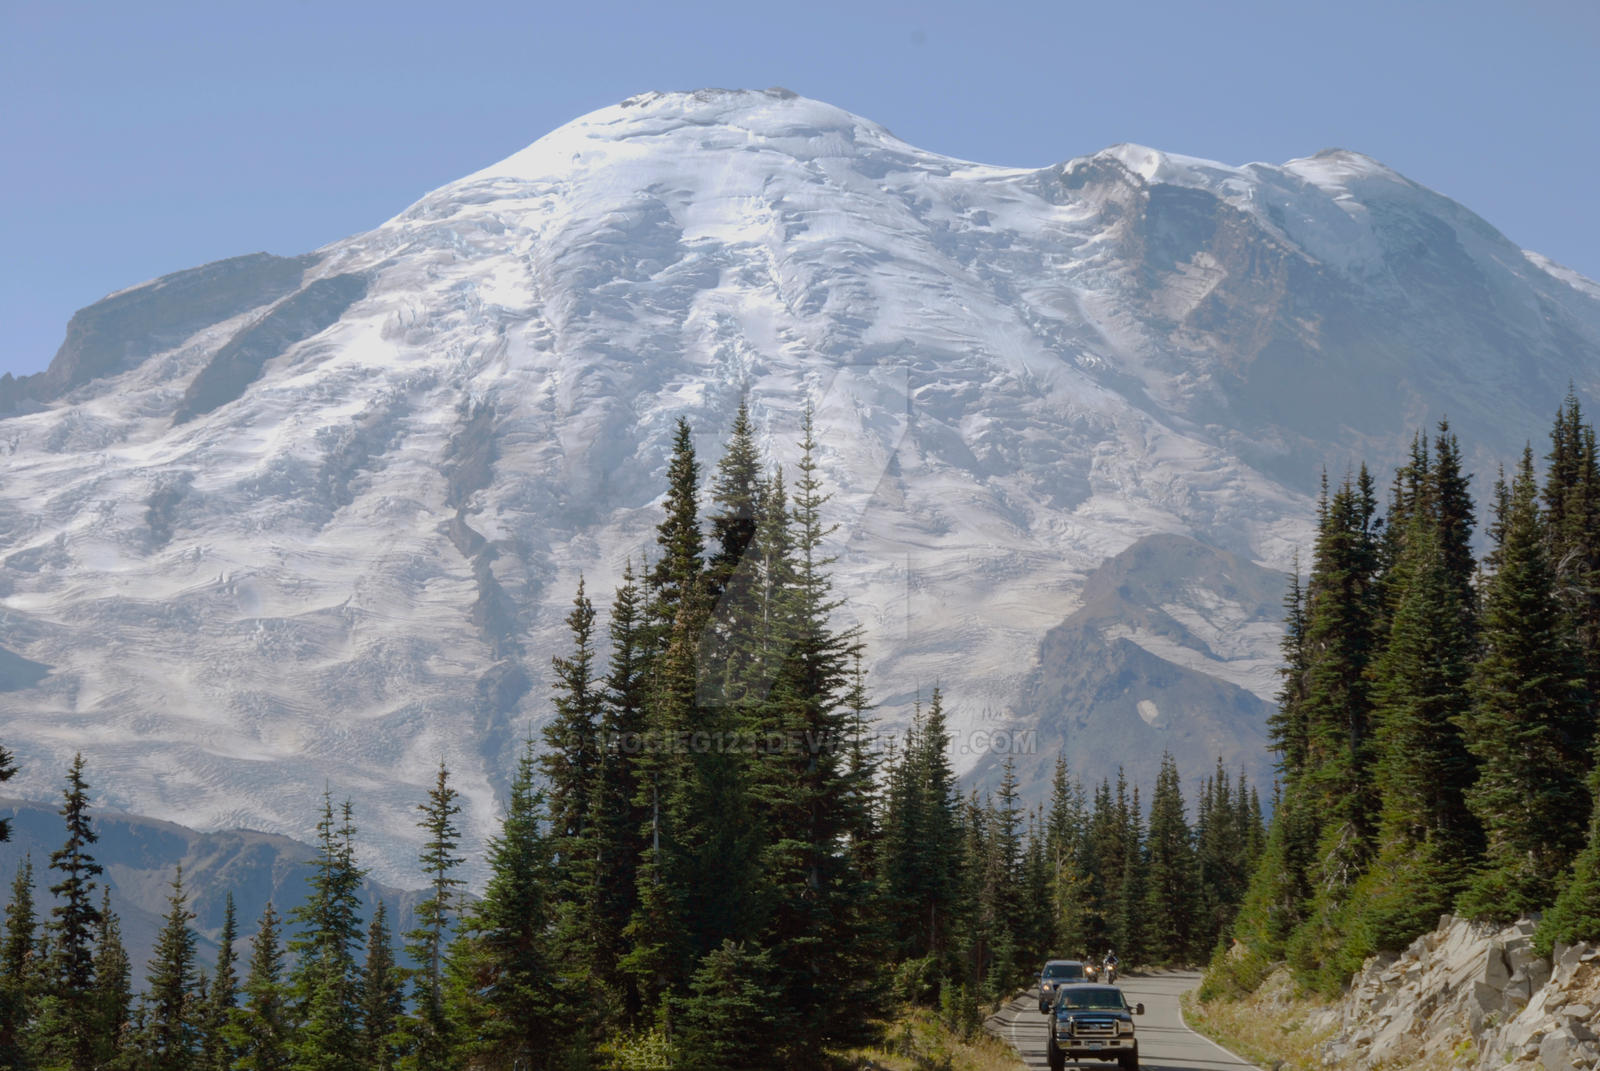 The Road to Rainier by MogieG123